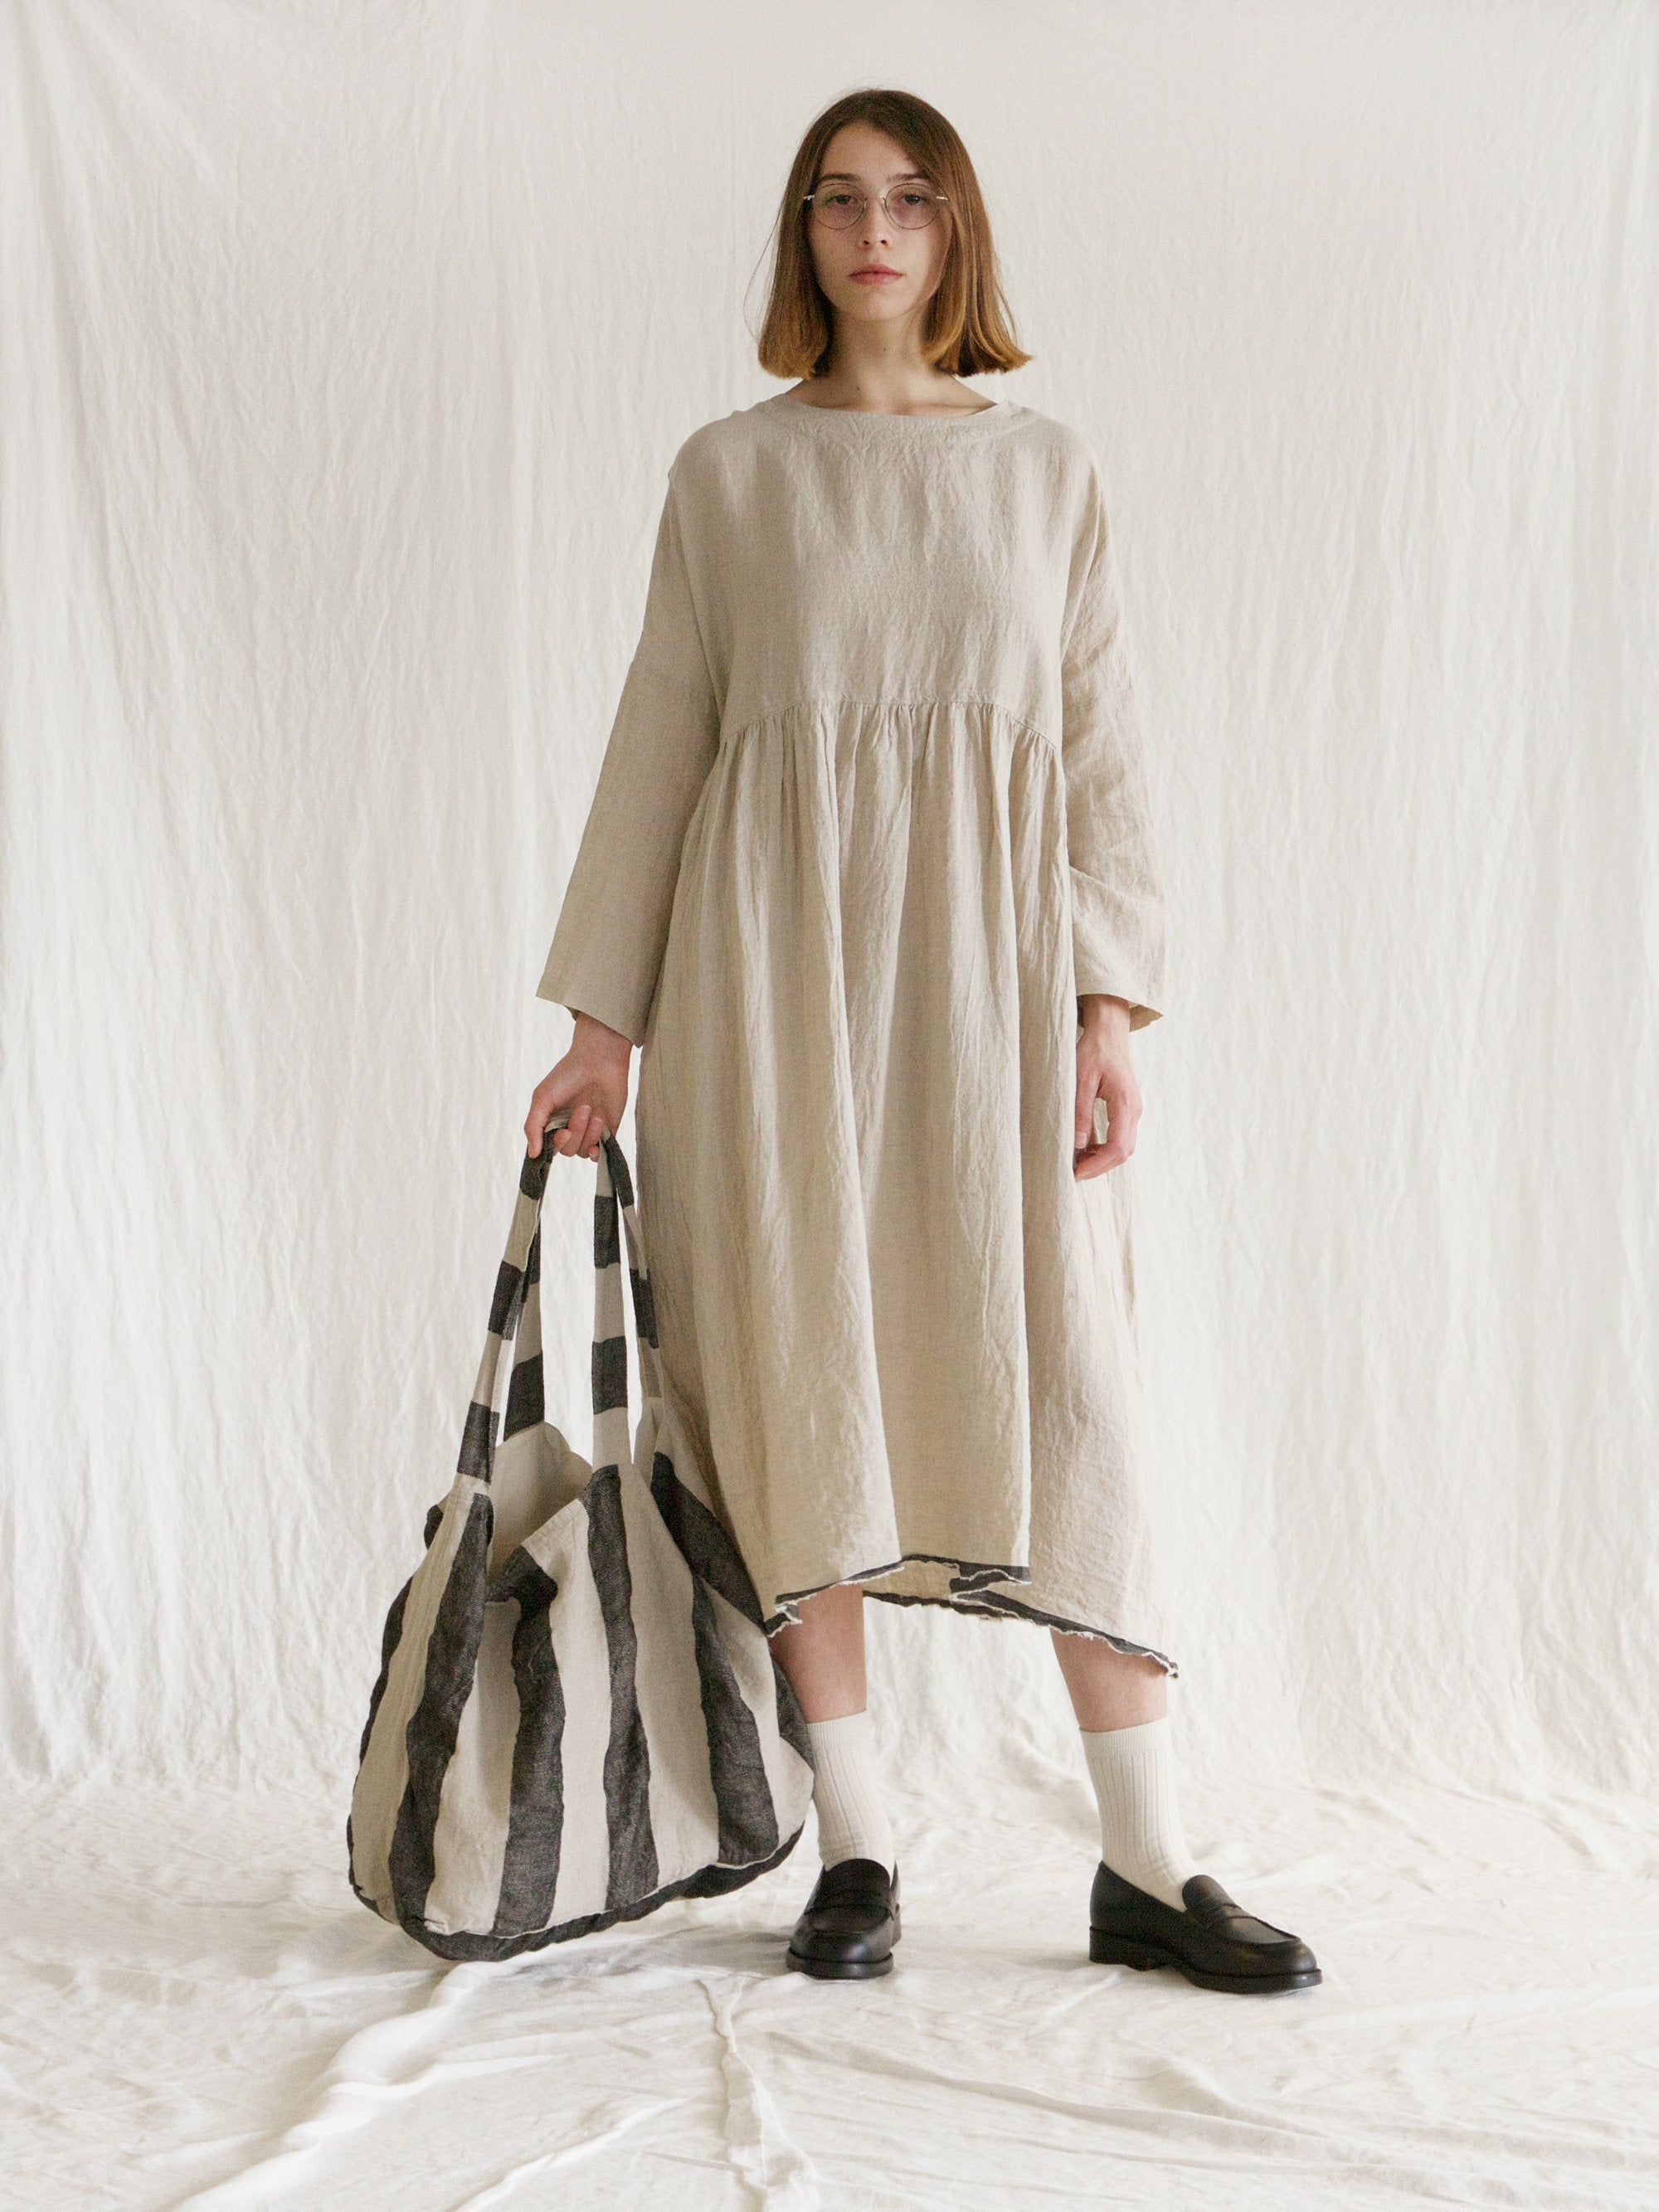 Namu Shop - Ichi Antiquites Linen Azumadaki Gather Dress